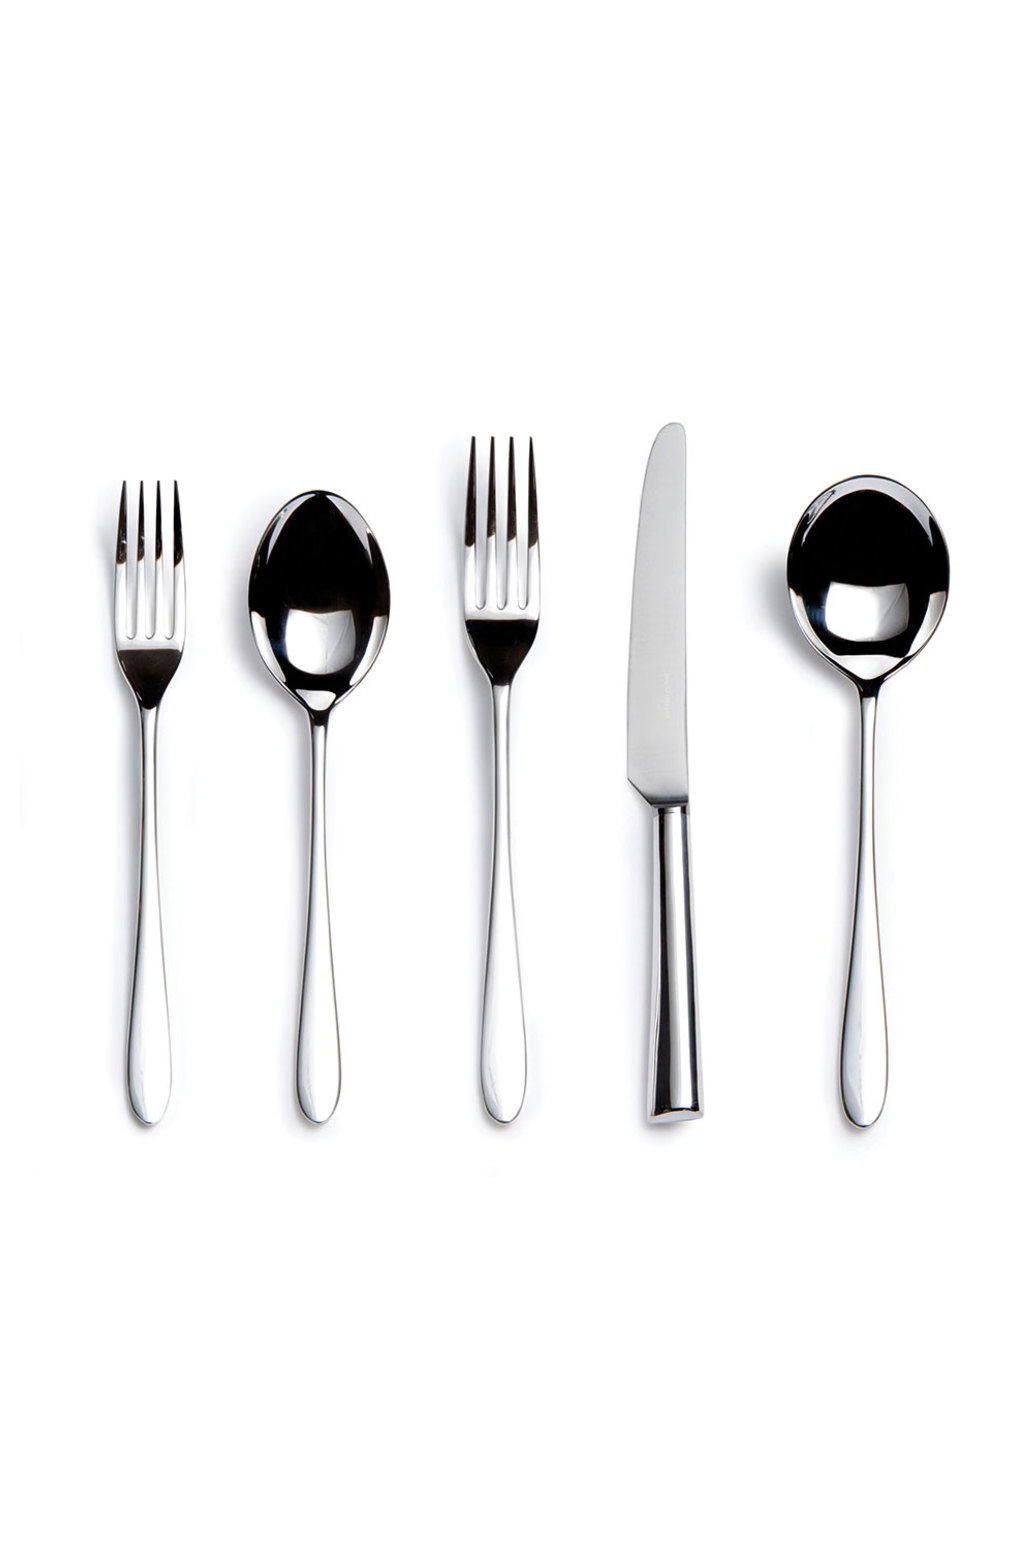 David mellor alabama chanin pride stainless set5